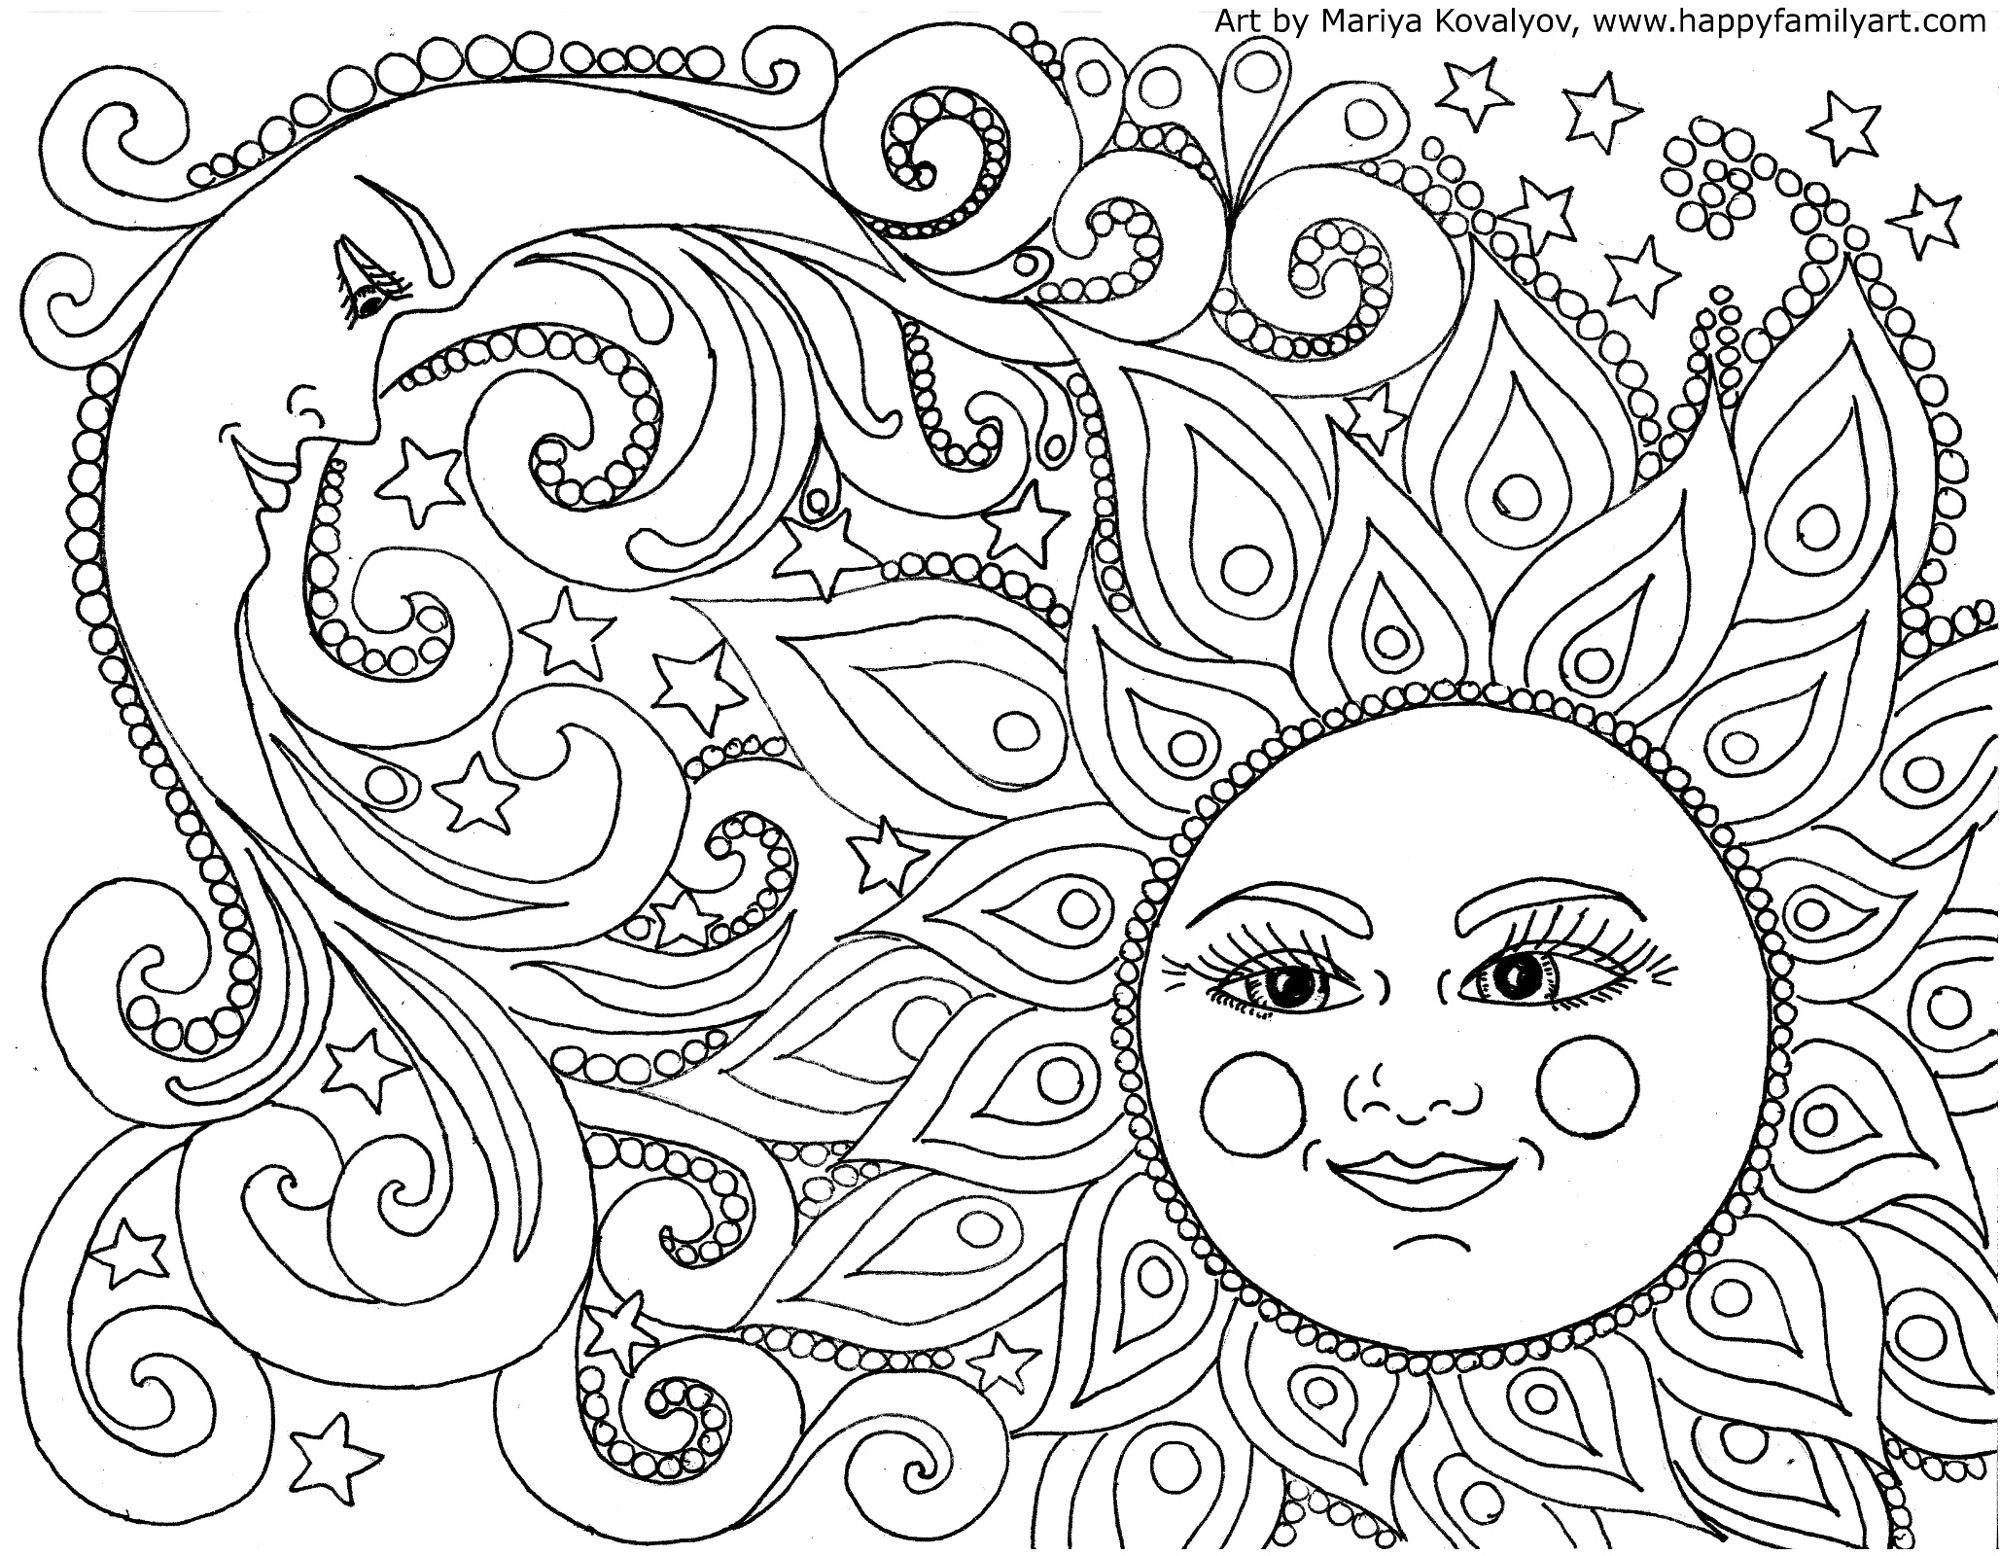 Zen Coloring Pages Pdf at GetDrawings.com | Free for ...